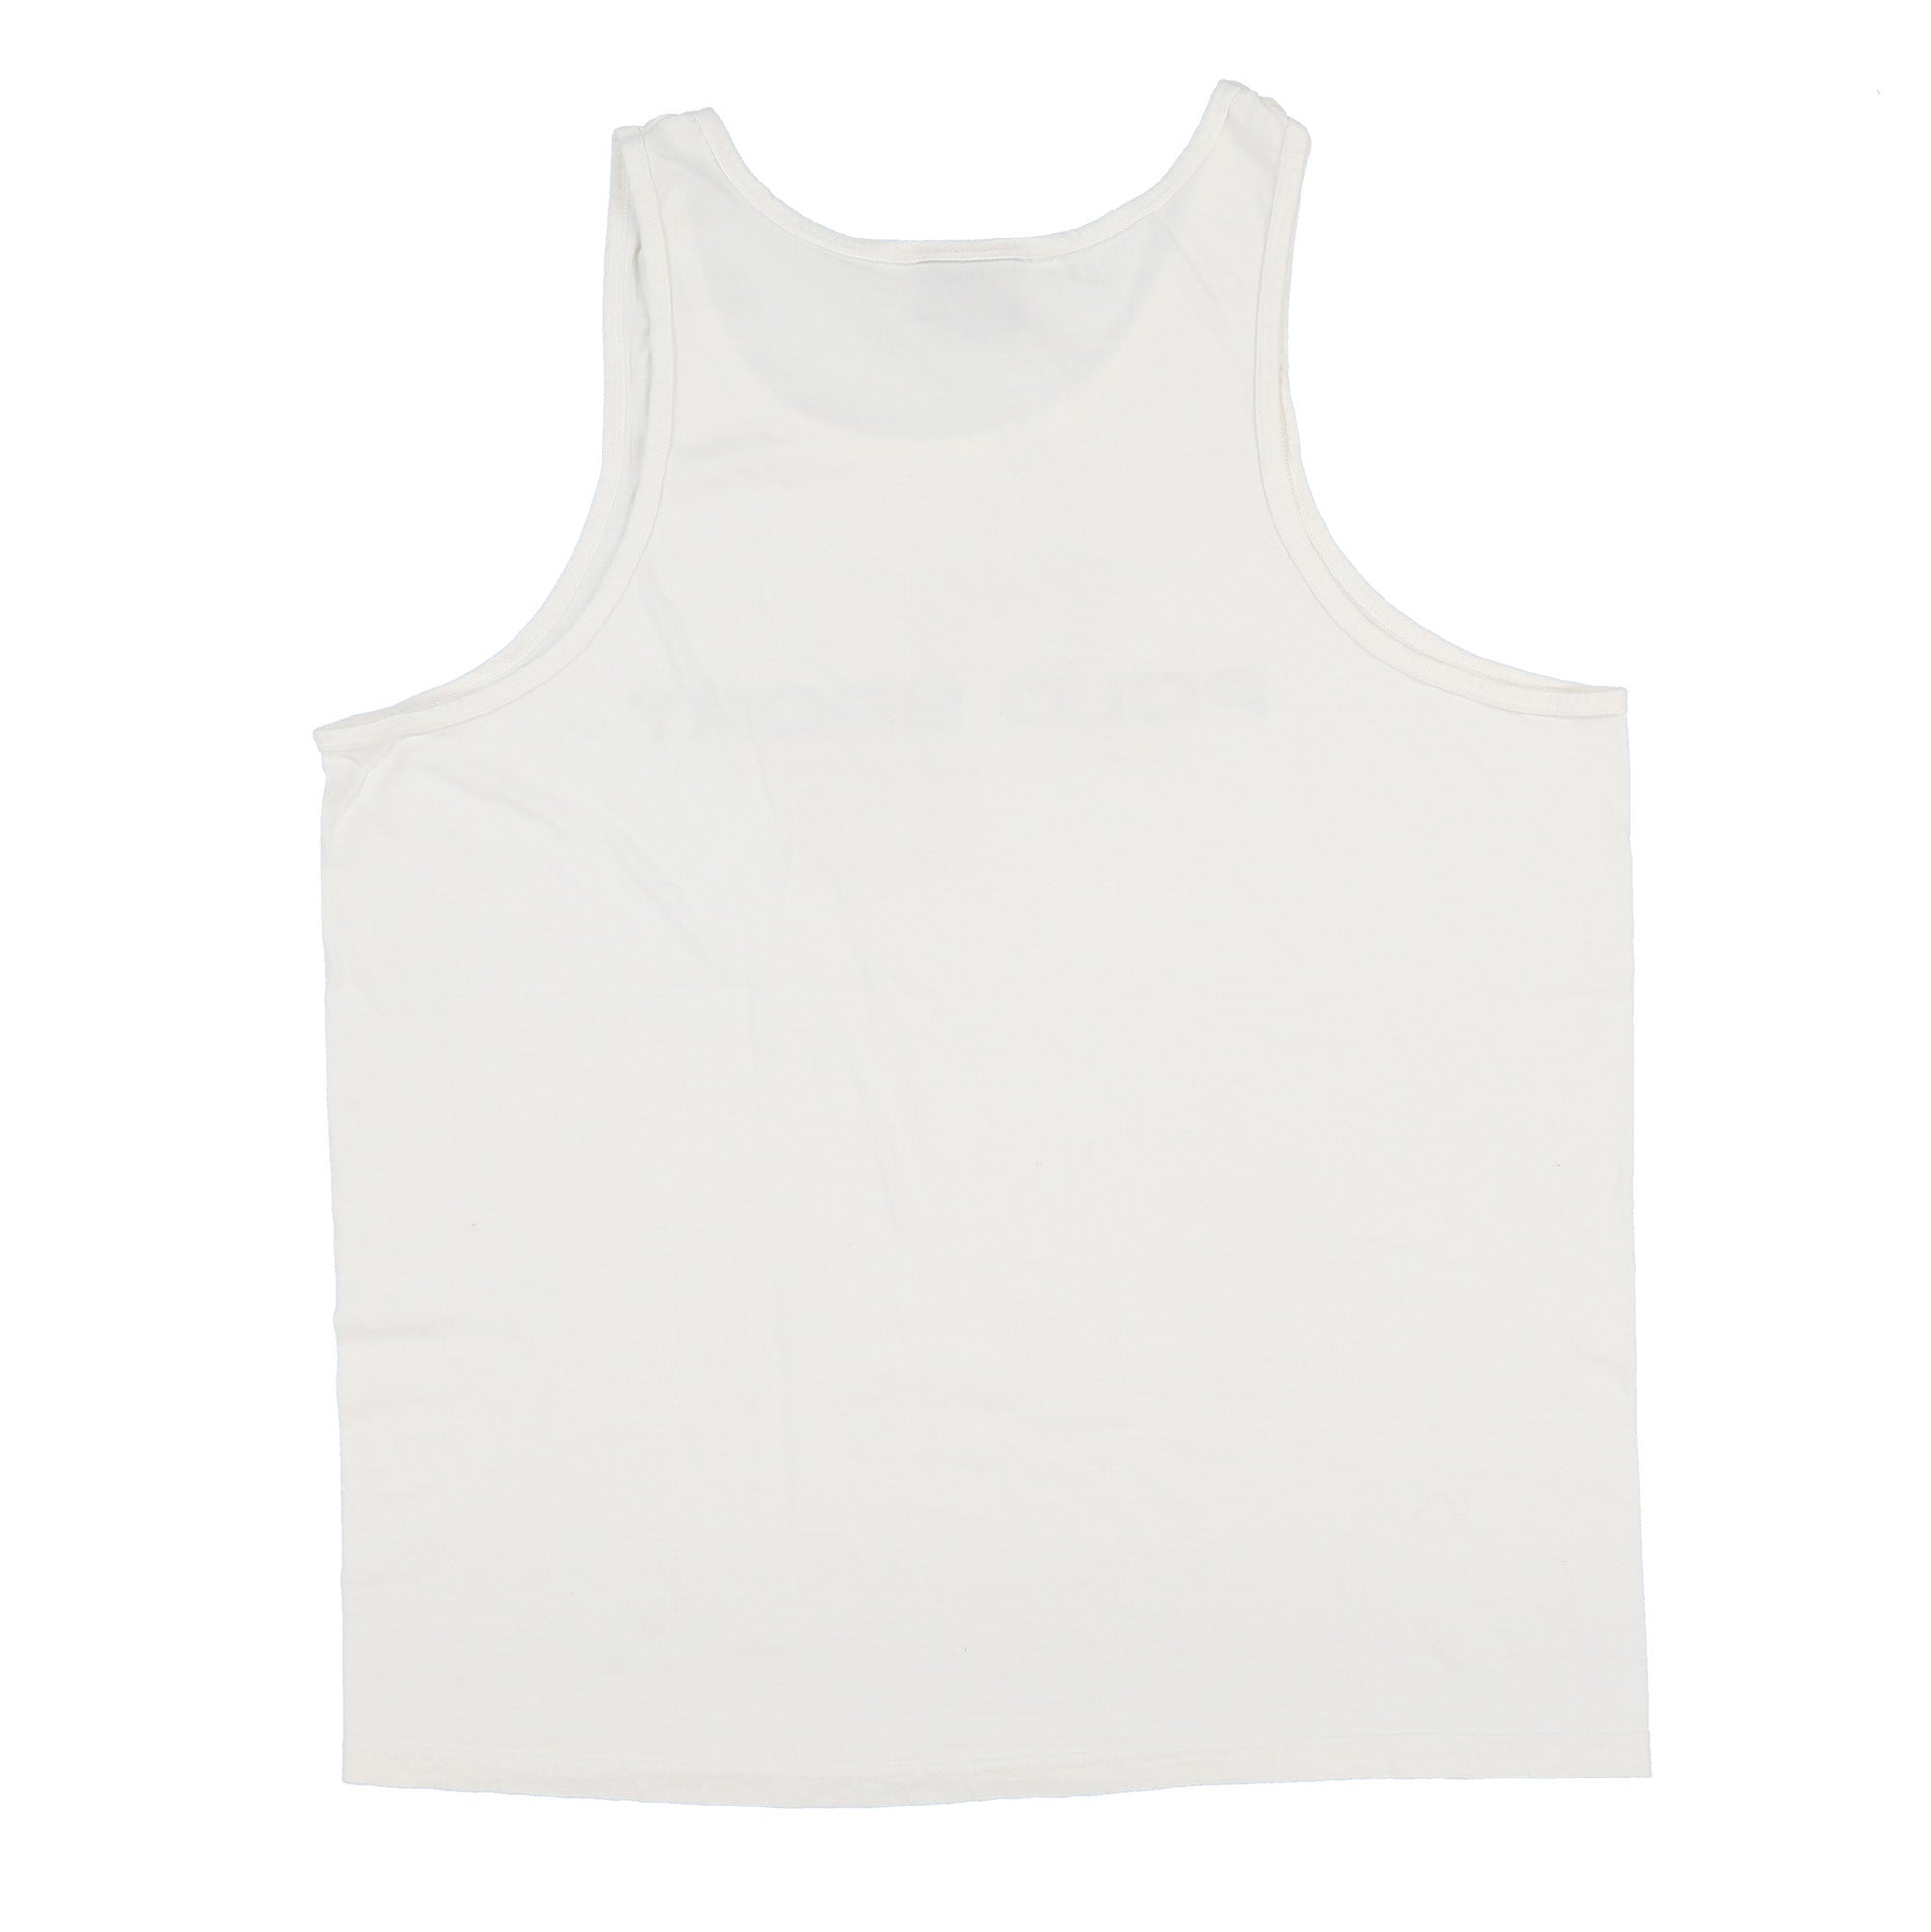 POLO SPORT SPELL OUT TANK TOP // WHITE